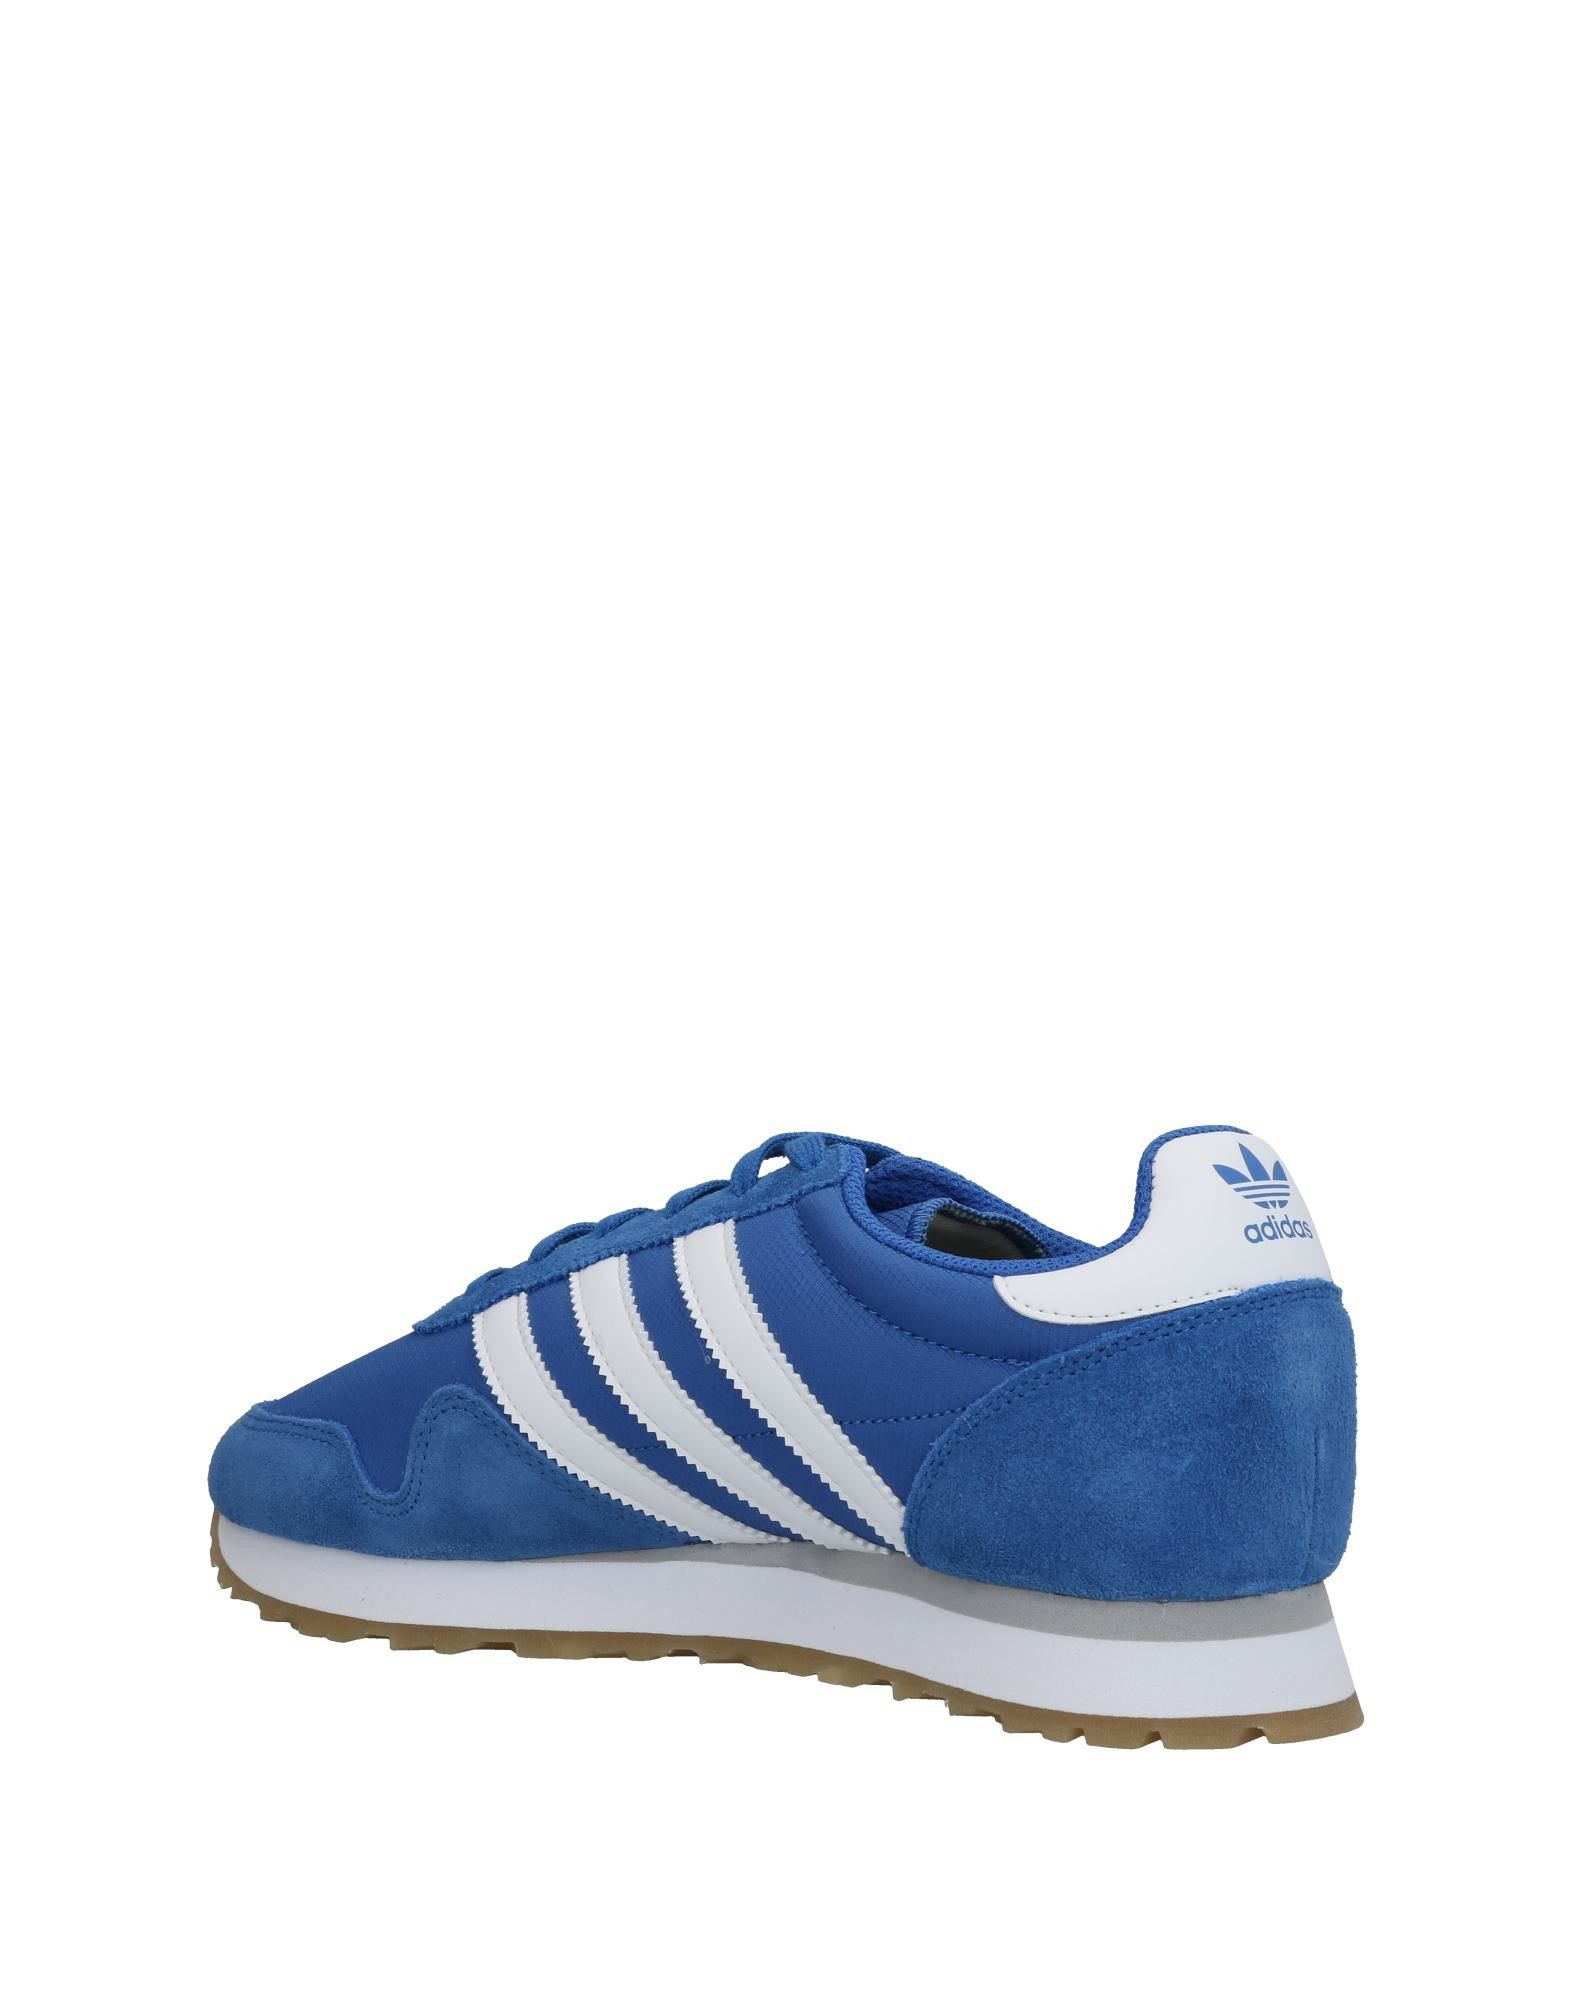 Adidas Originals Originals Sneakers - Men Adidas Originals Originals Sneakers online on  Australia - 11462380LB 281869